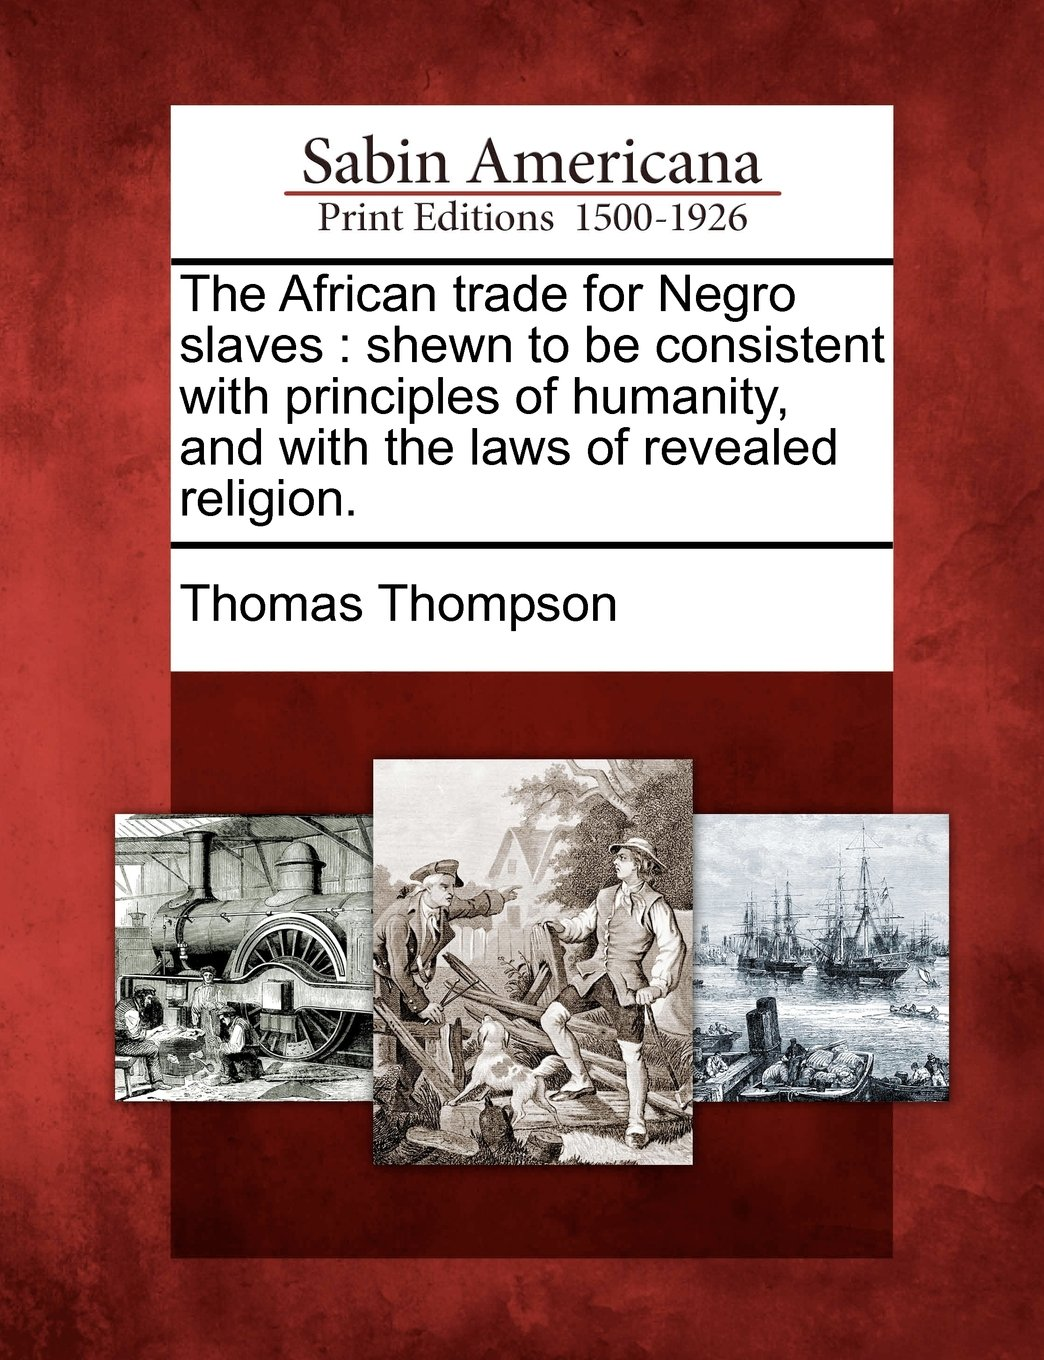 Read Online The African trade for Negro slaves: shewn to be consistent with principles of humanity, and with the laws of revealed religion. pdf